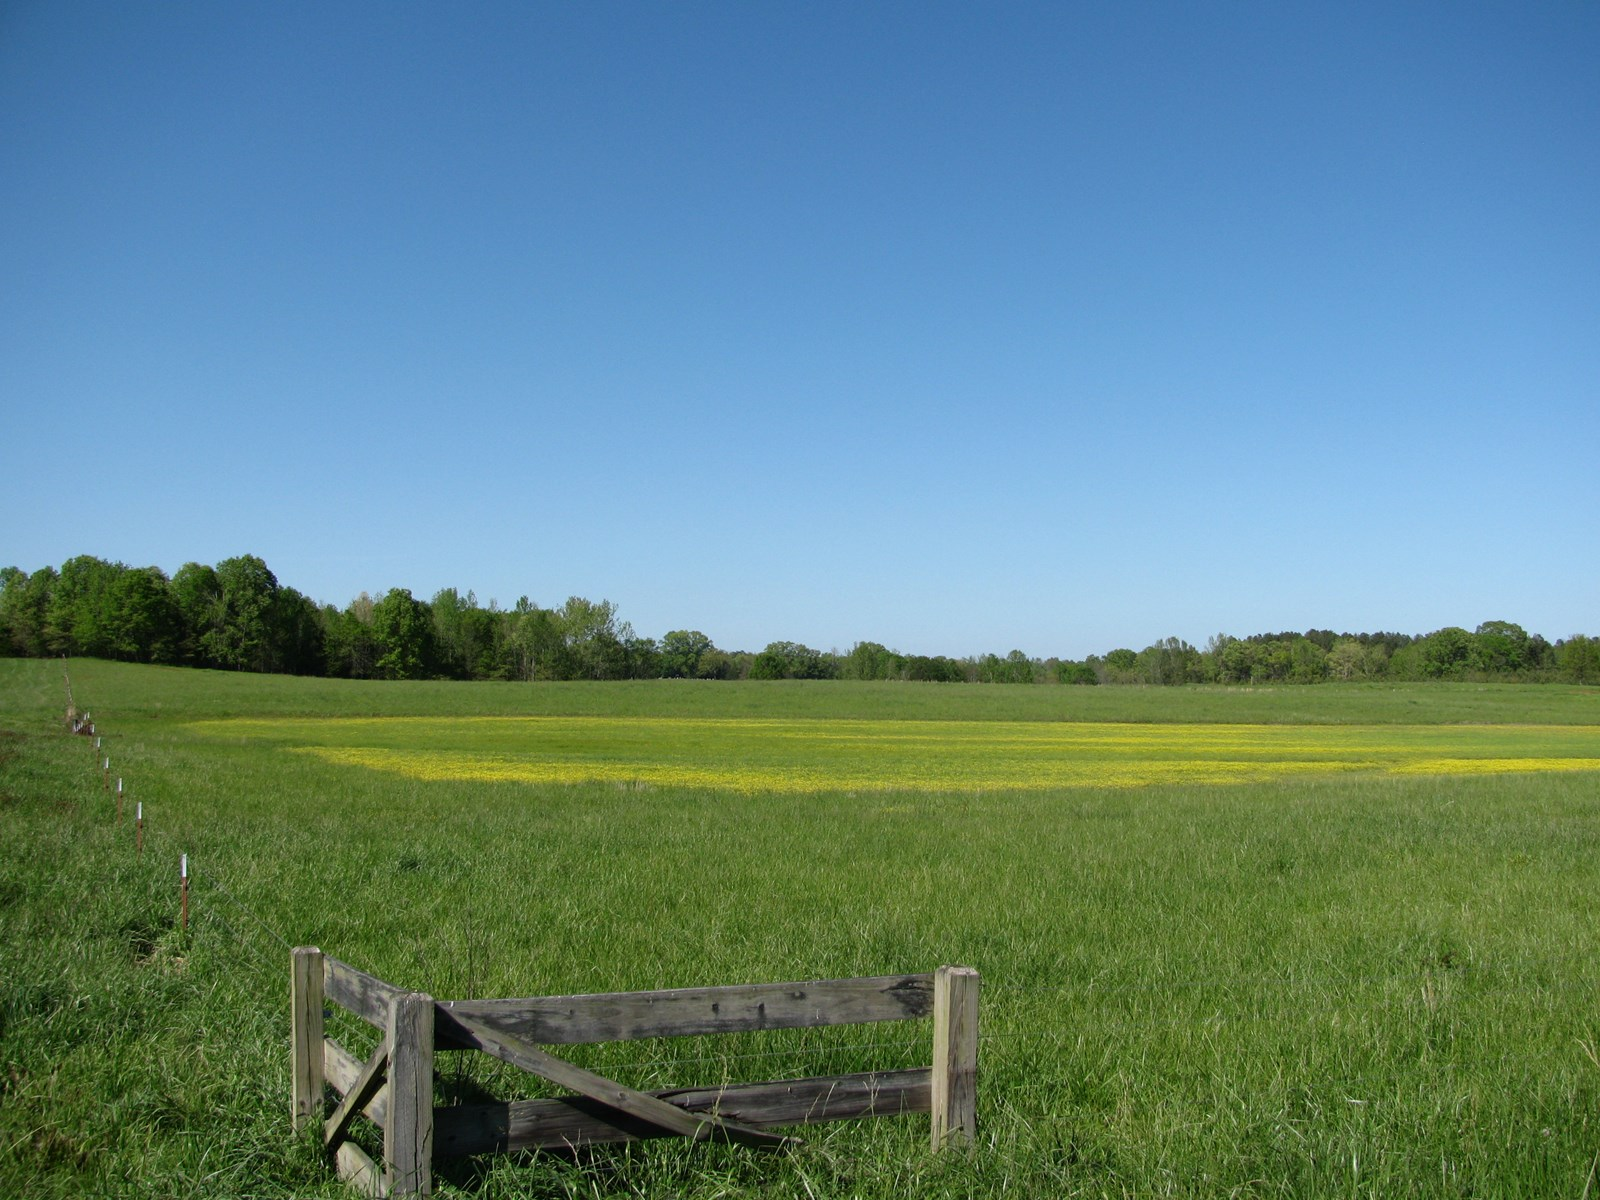 FARM FOR SALE IN TN, CREEK, UNRESTRICTED FENCED PASTURE LAND